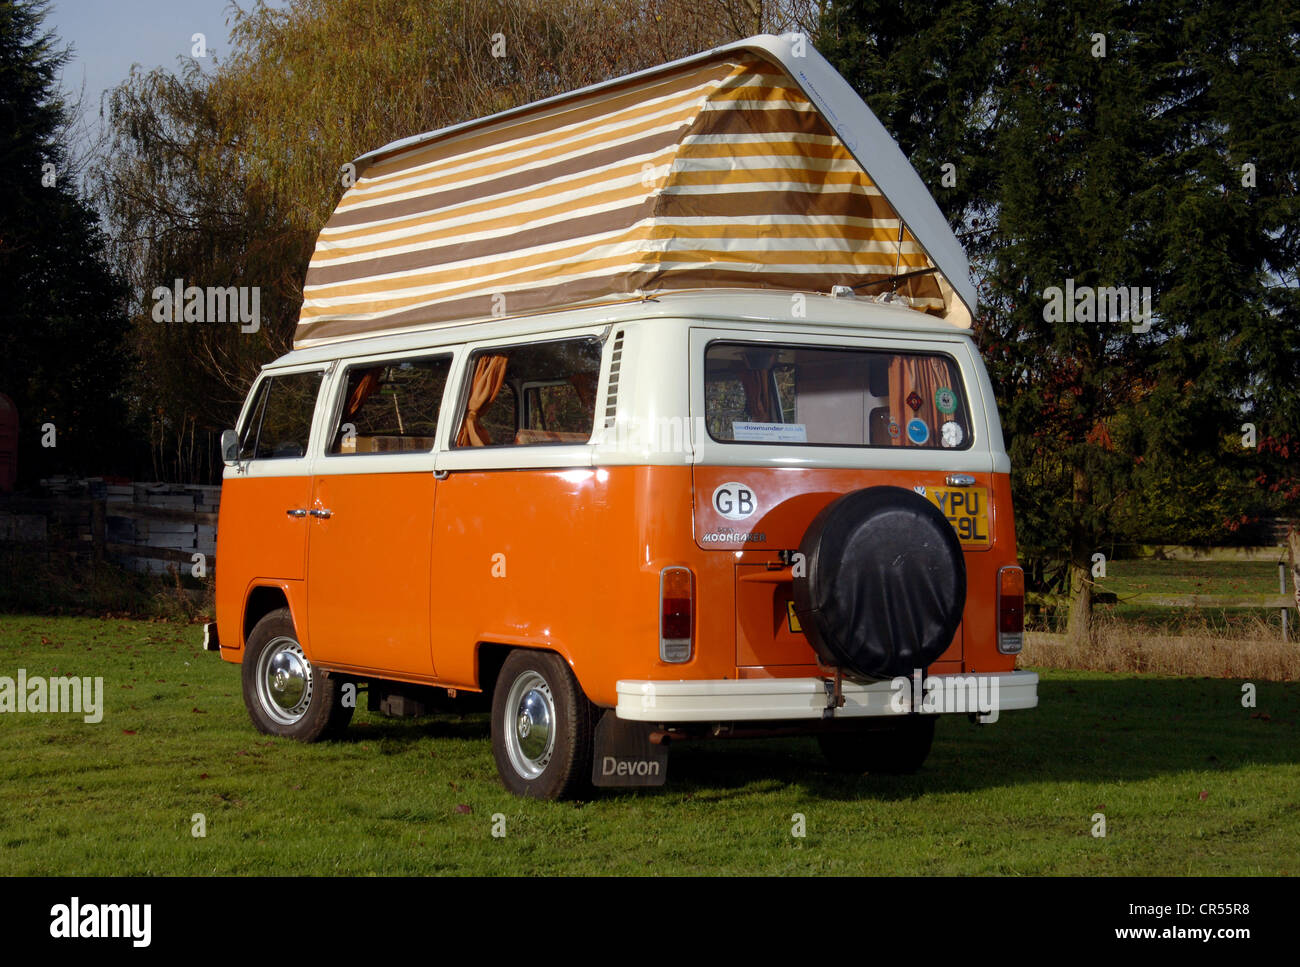 Bay WIndow VW Volkswagen c&er van micro bus with pop top roof up & Bay WIndow VW Volkswagen camper van micro bus with pop top roof ...